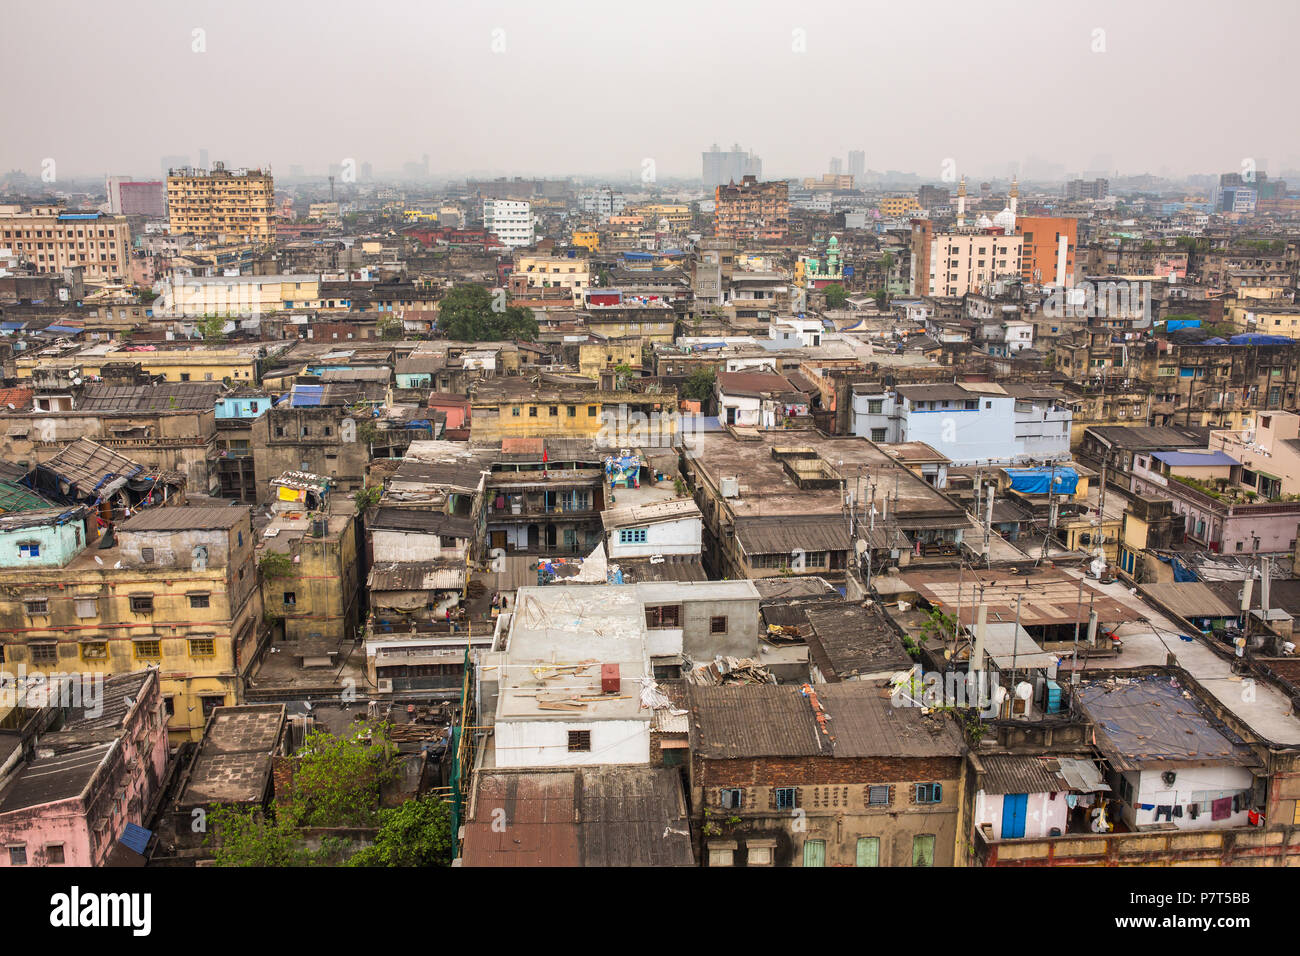 Roofs of the Kolkata city, West Bengal, India. - Stock Image